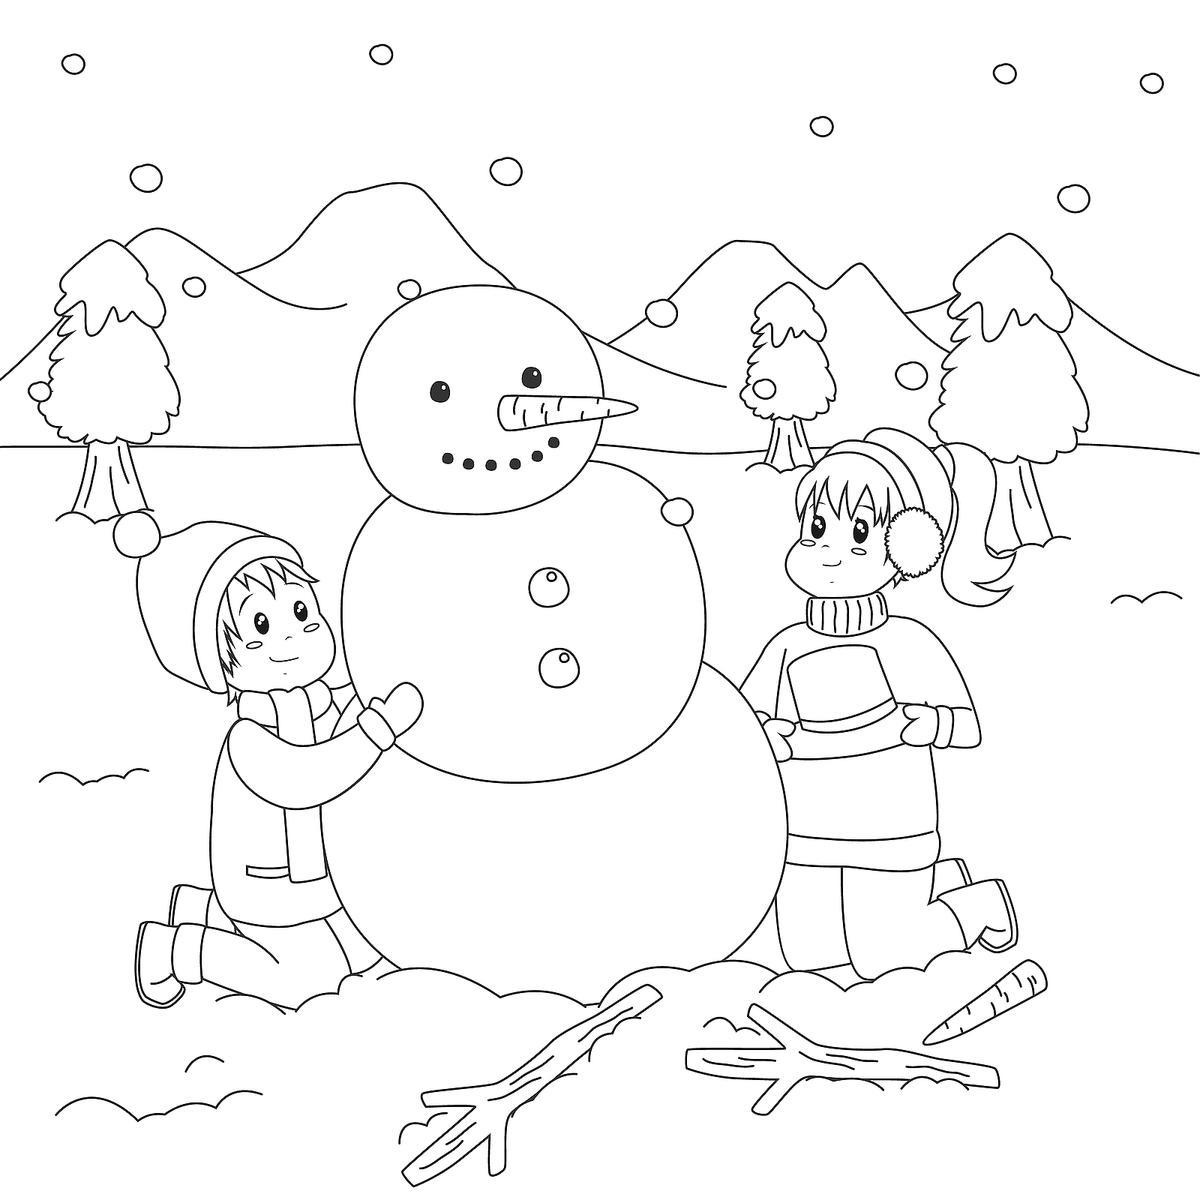 Snowman Coloring Pages For Kids Adults 10 Printable Coloring Pages Of Snowmen For Winter Fun Printables 30seconds Mom